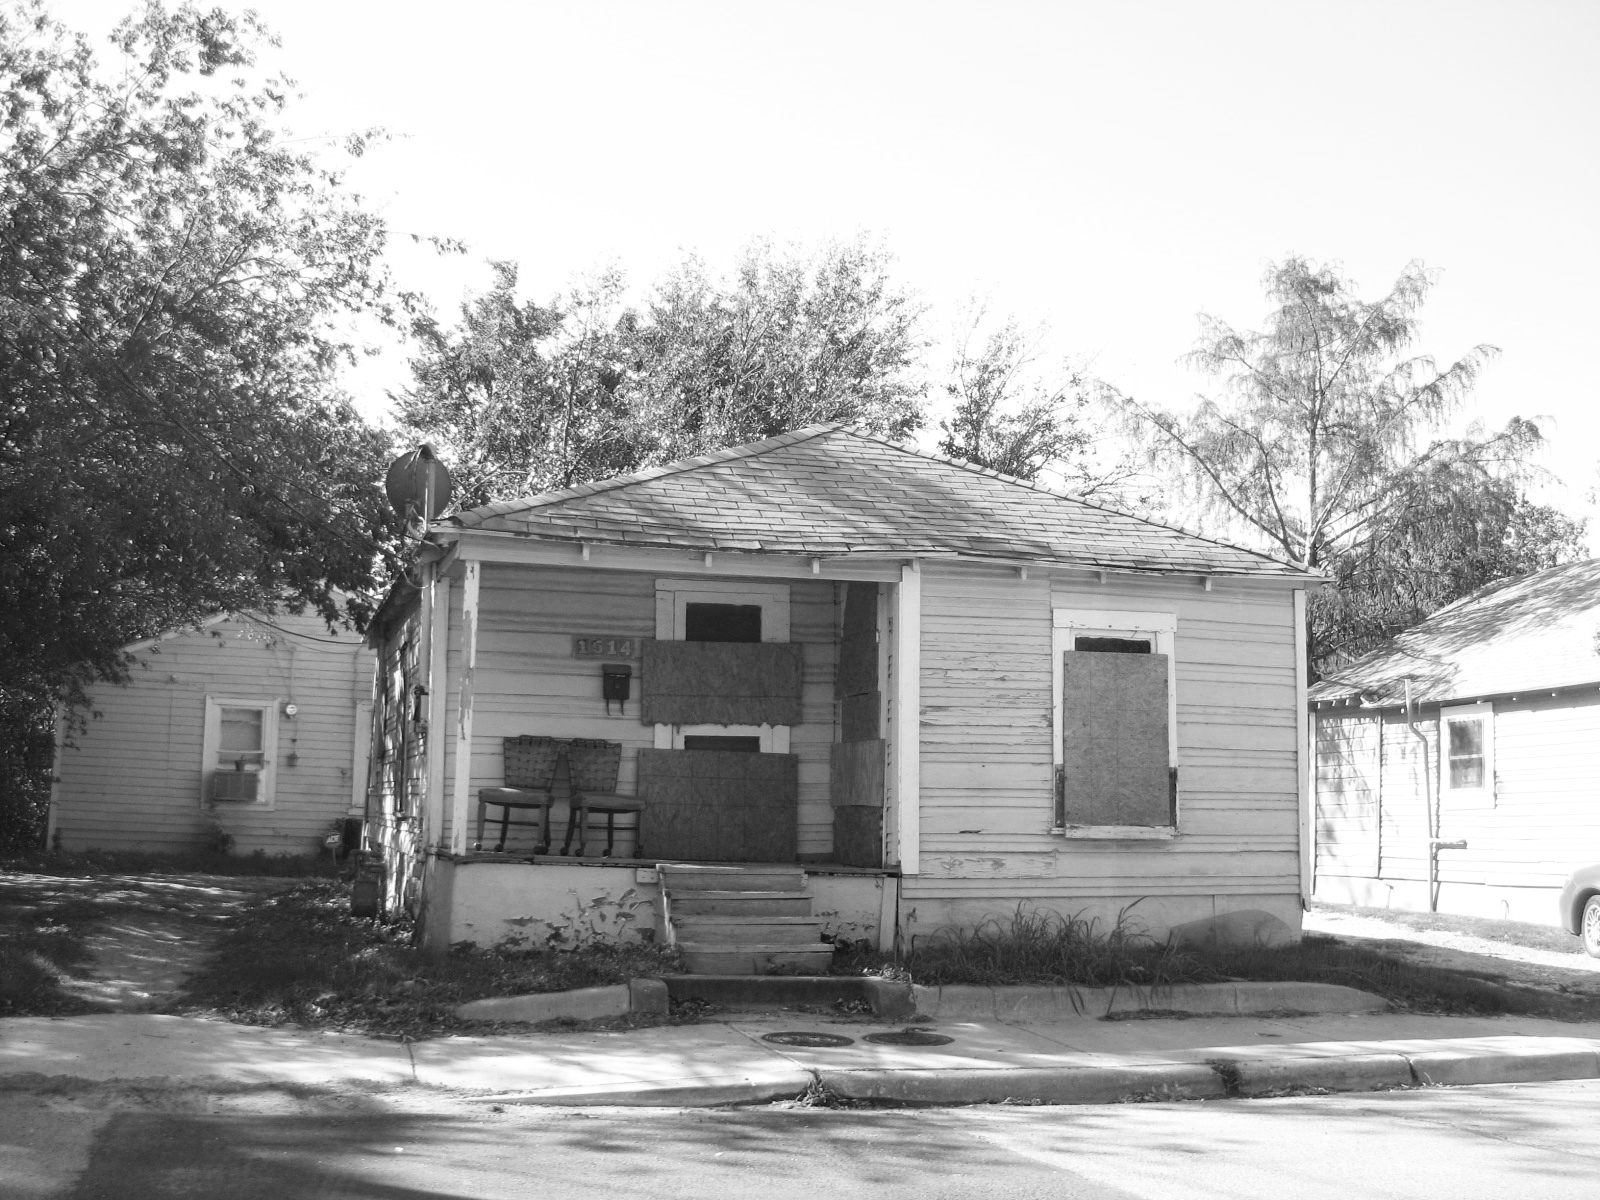 An example of a blighted home